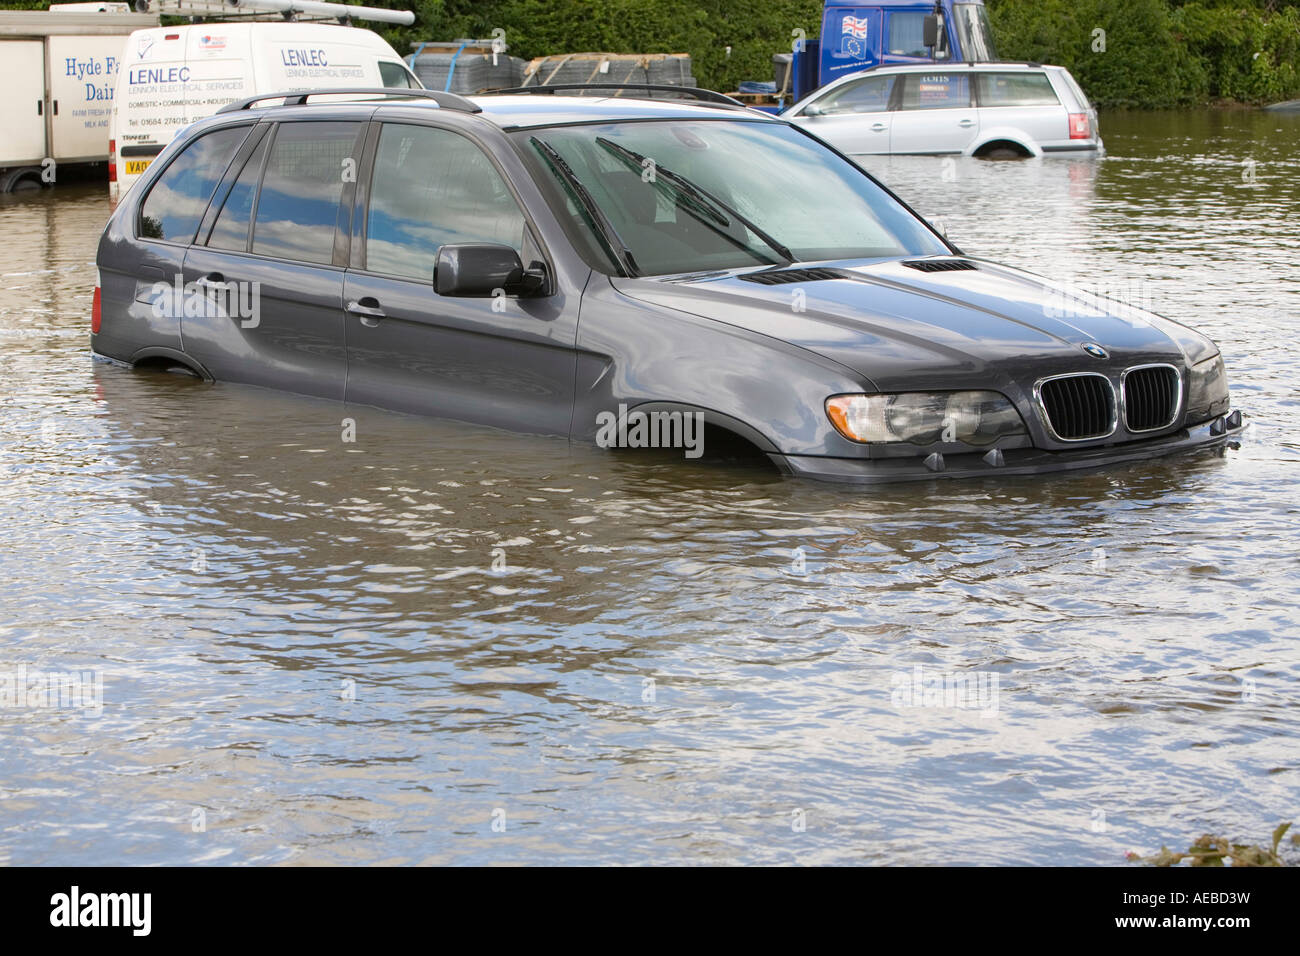 A flooded car in Tewkesbury - Stock Image